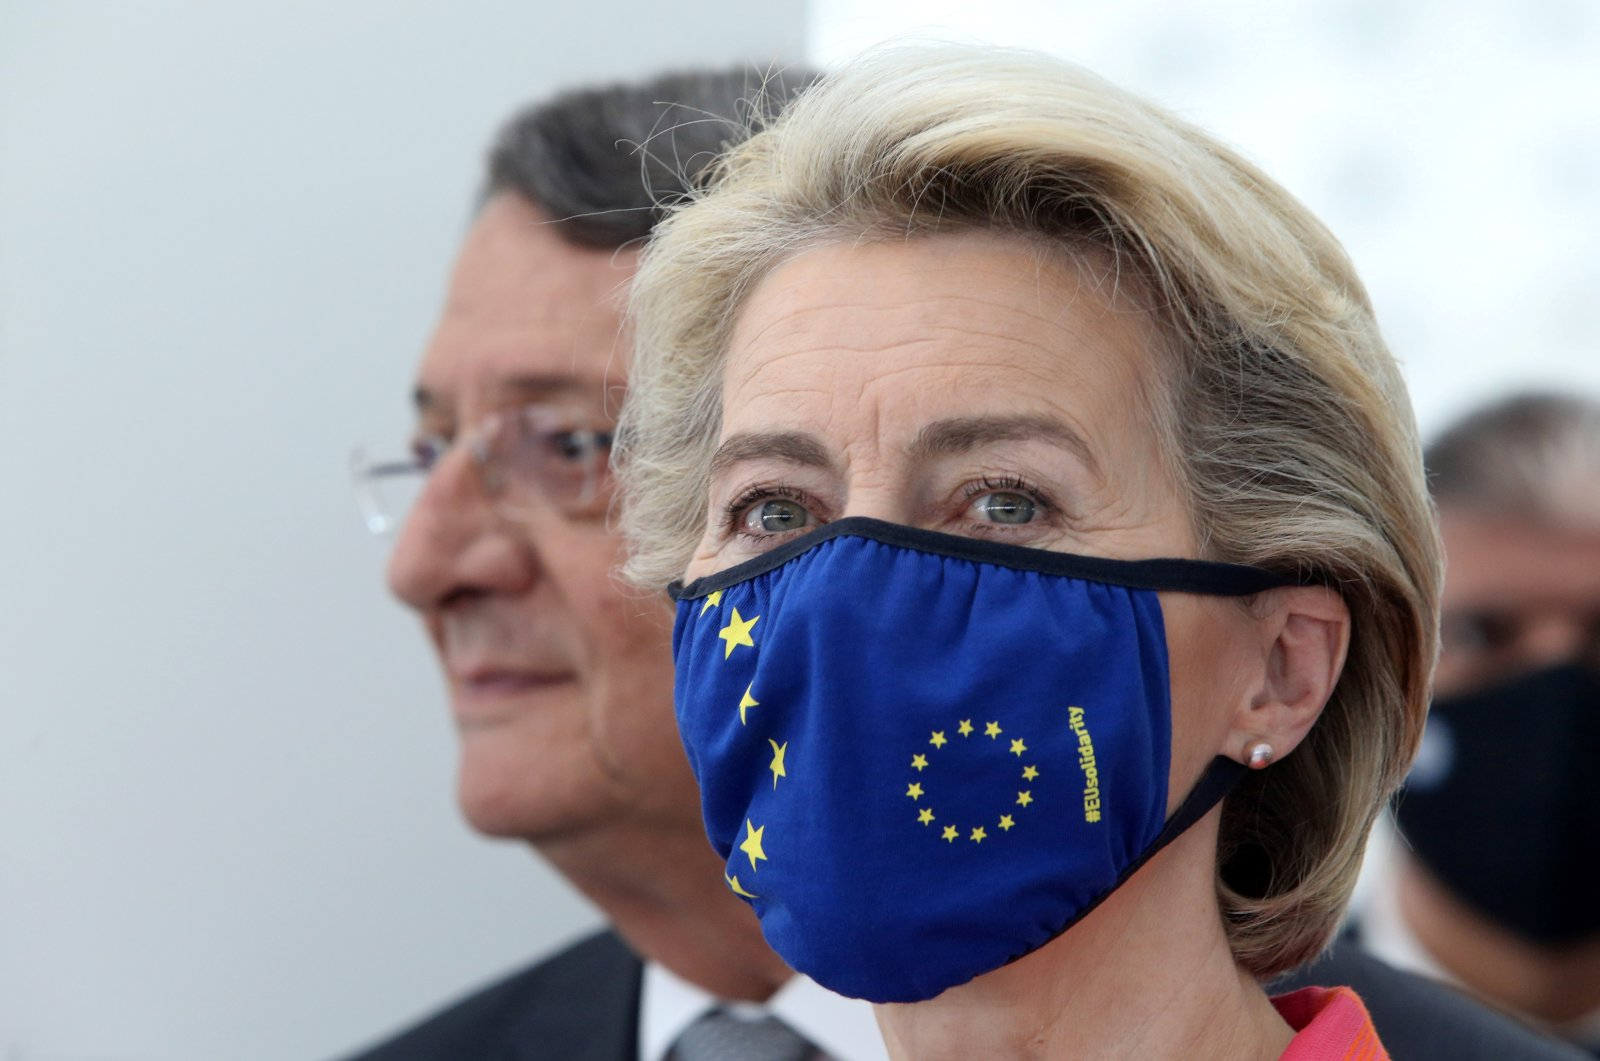 Greek Cypriot leader Nicos Anastasiades and EU Commission President Ursula von der Leyen attend a ceremony in Nicosia, southern Cyprus July 8, 2021. (REUTERS Photo)